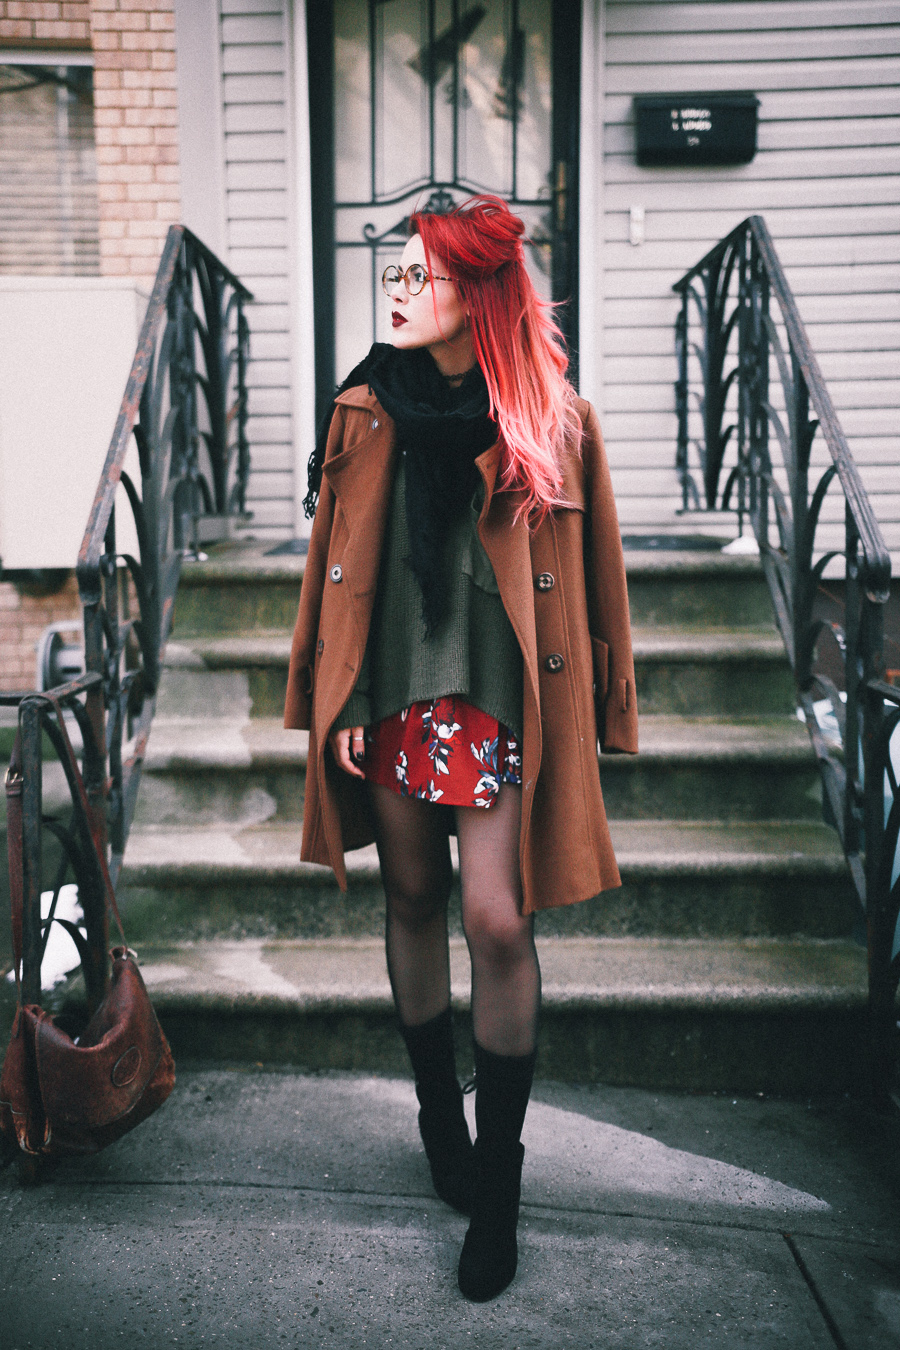 Le Happy wearing fall colors with black suede booties